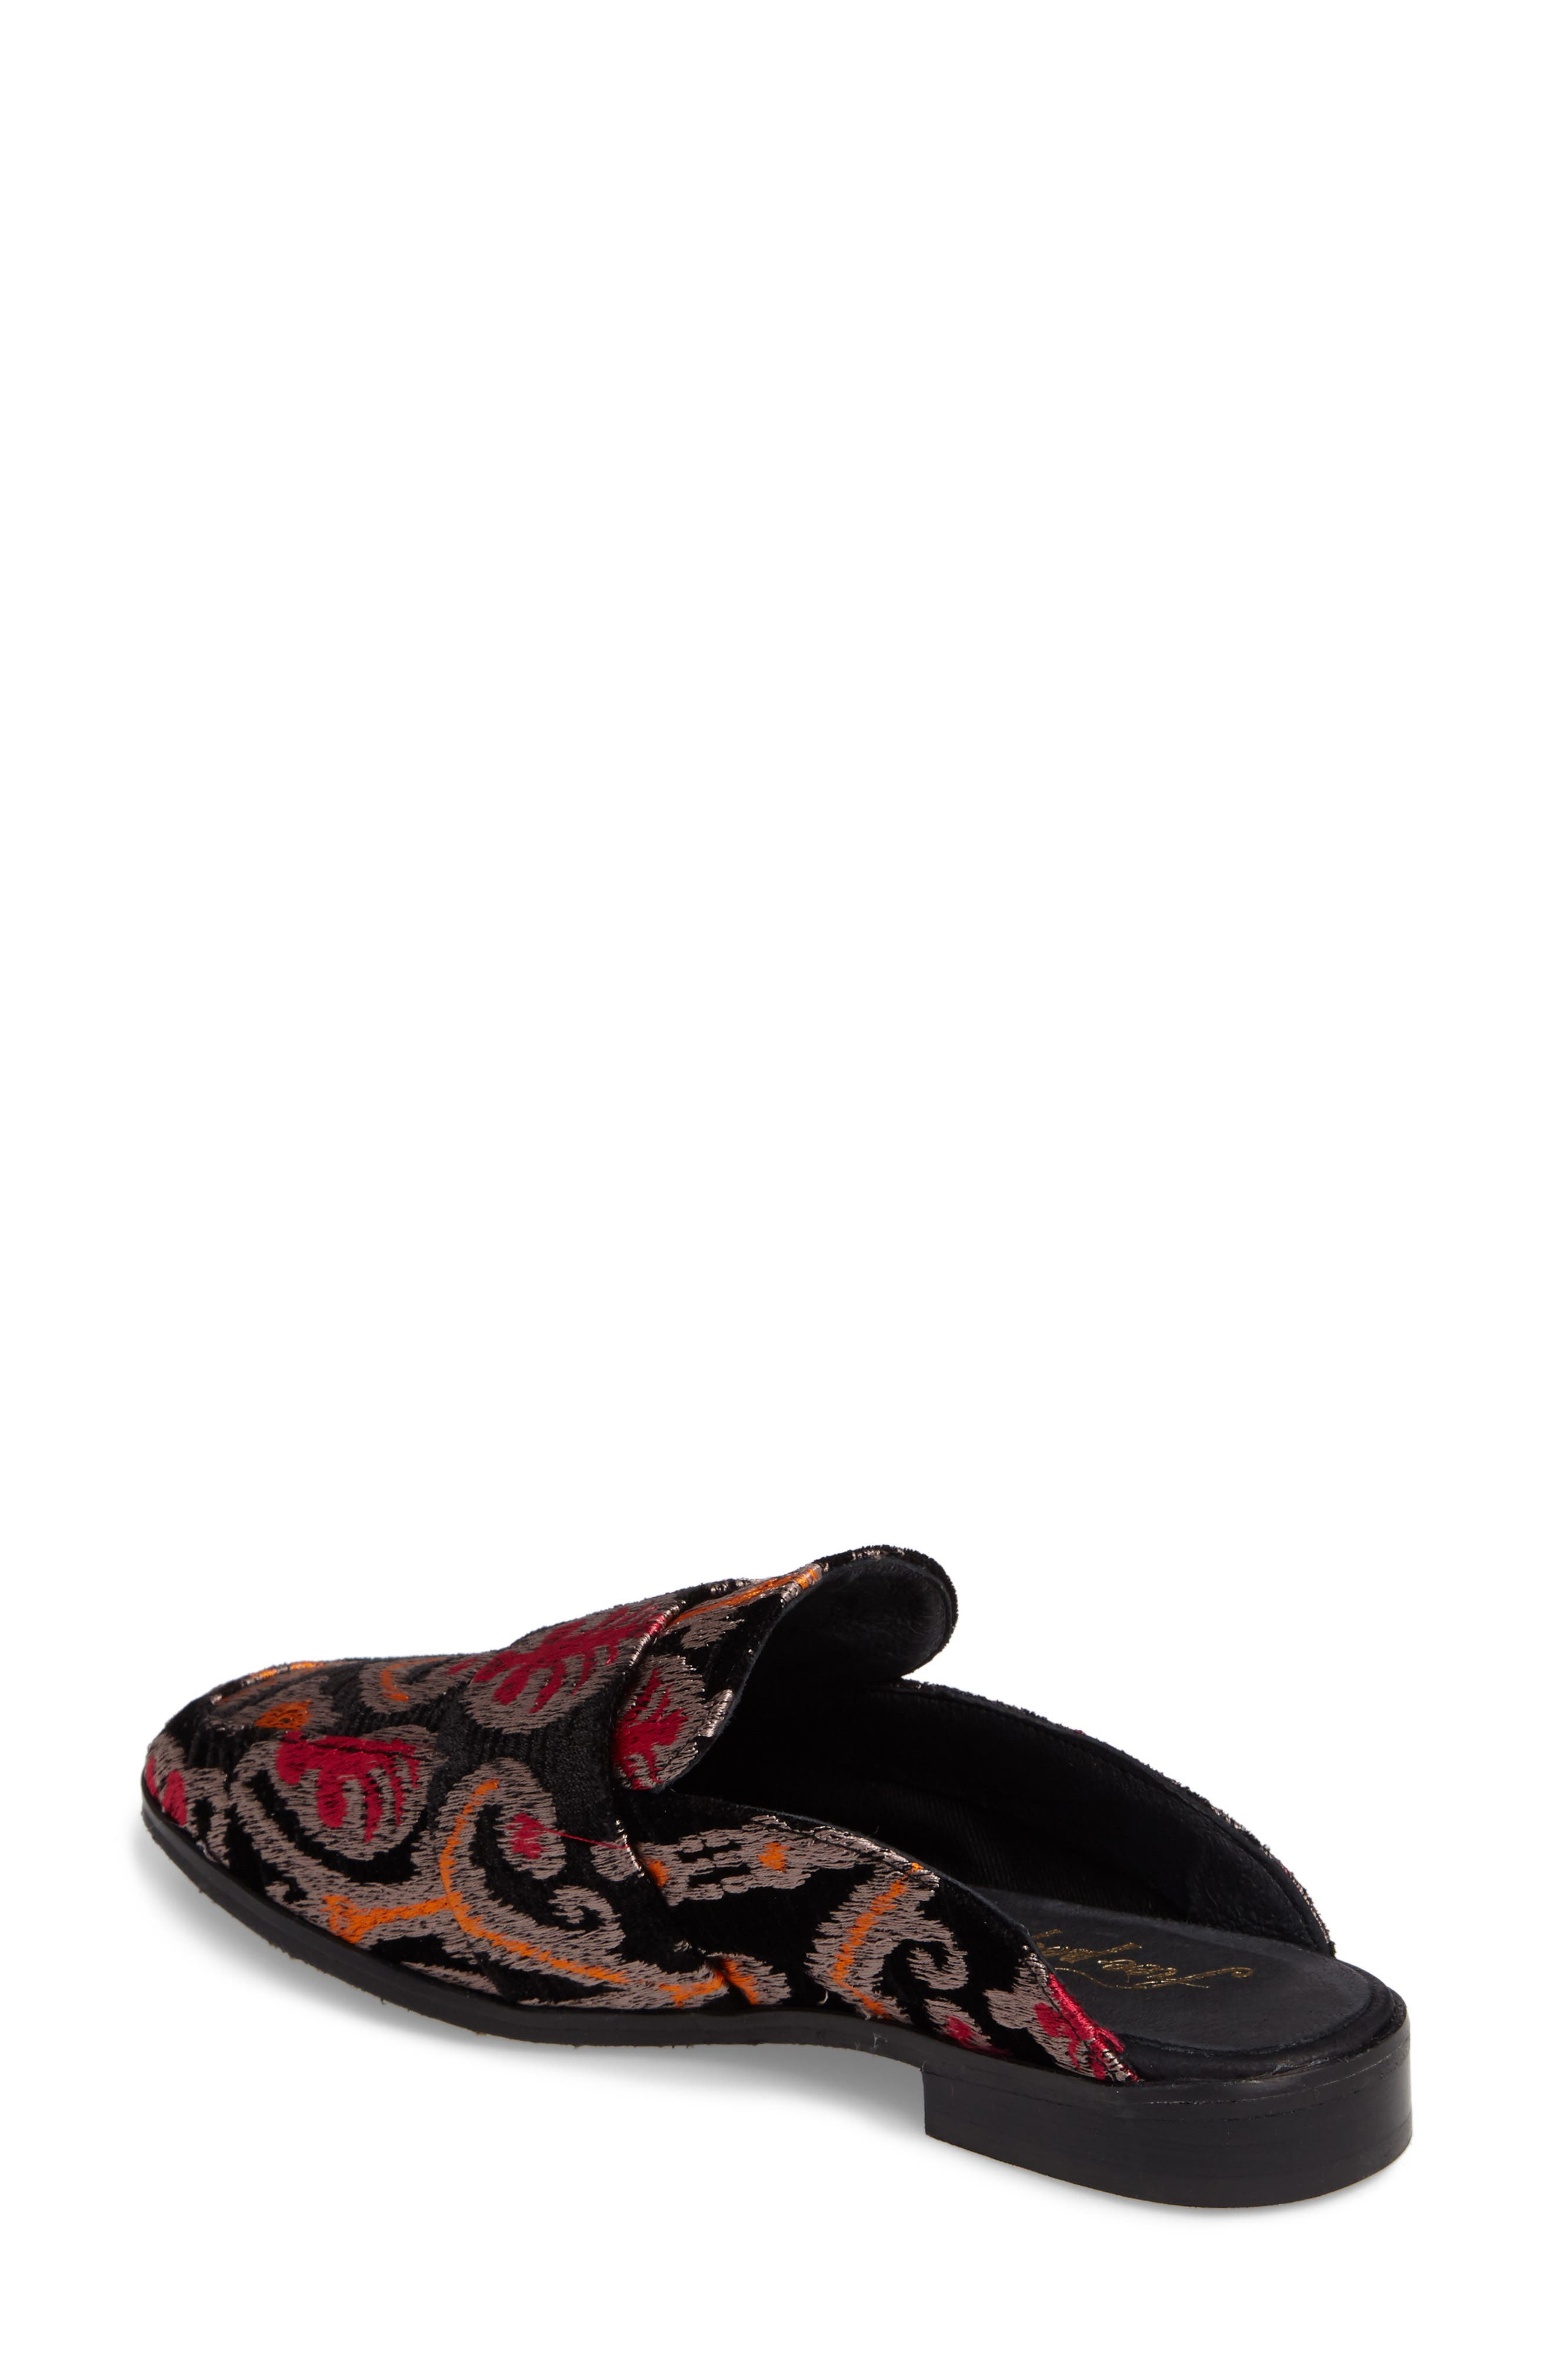 At Ease Loafer,                             Alternate thumbnail 2, color,                             Black Combo Fabric